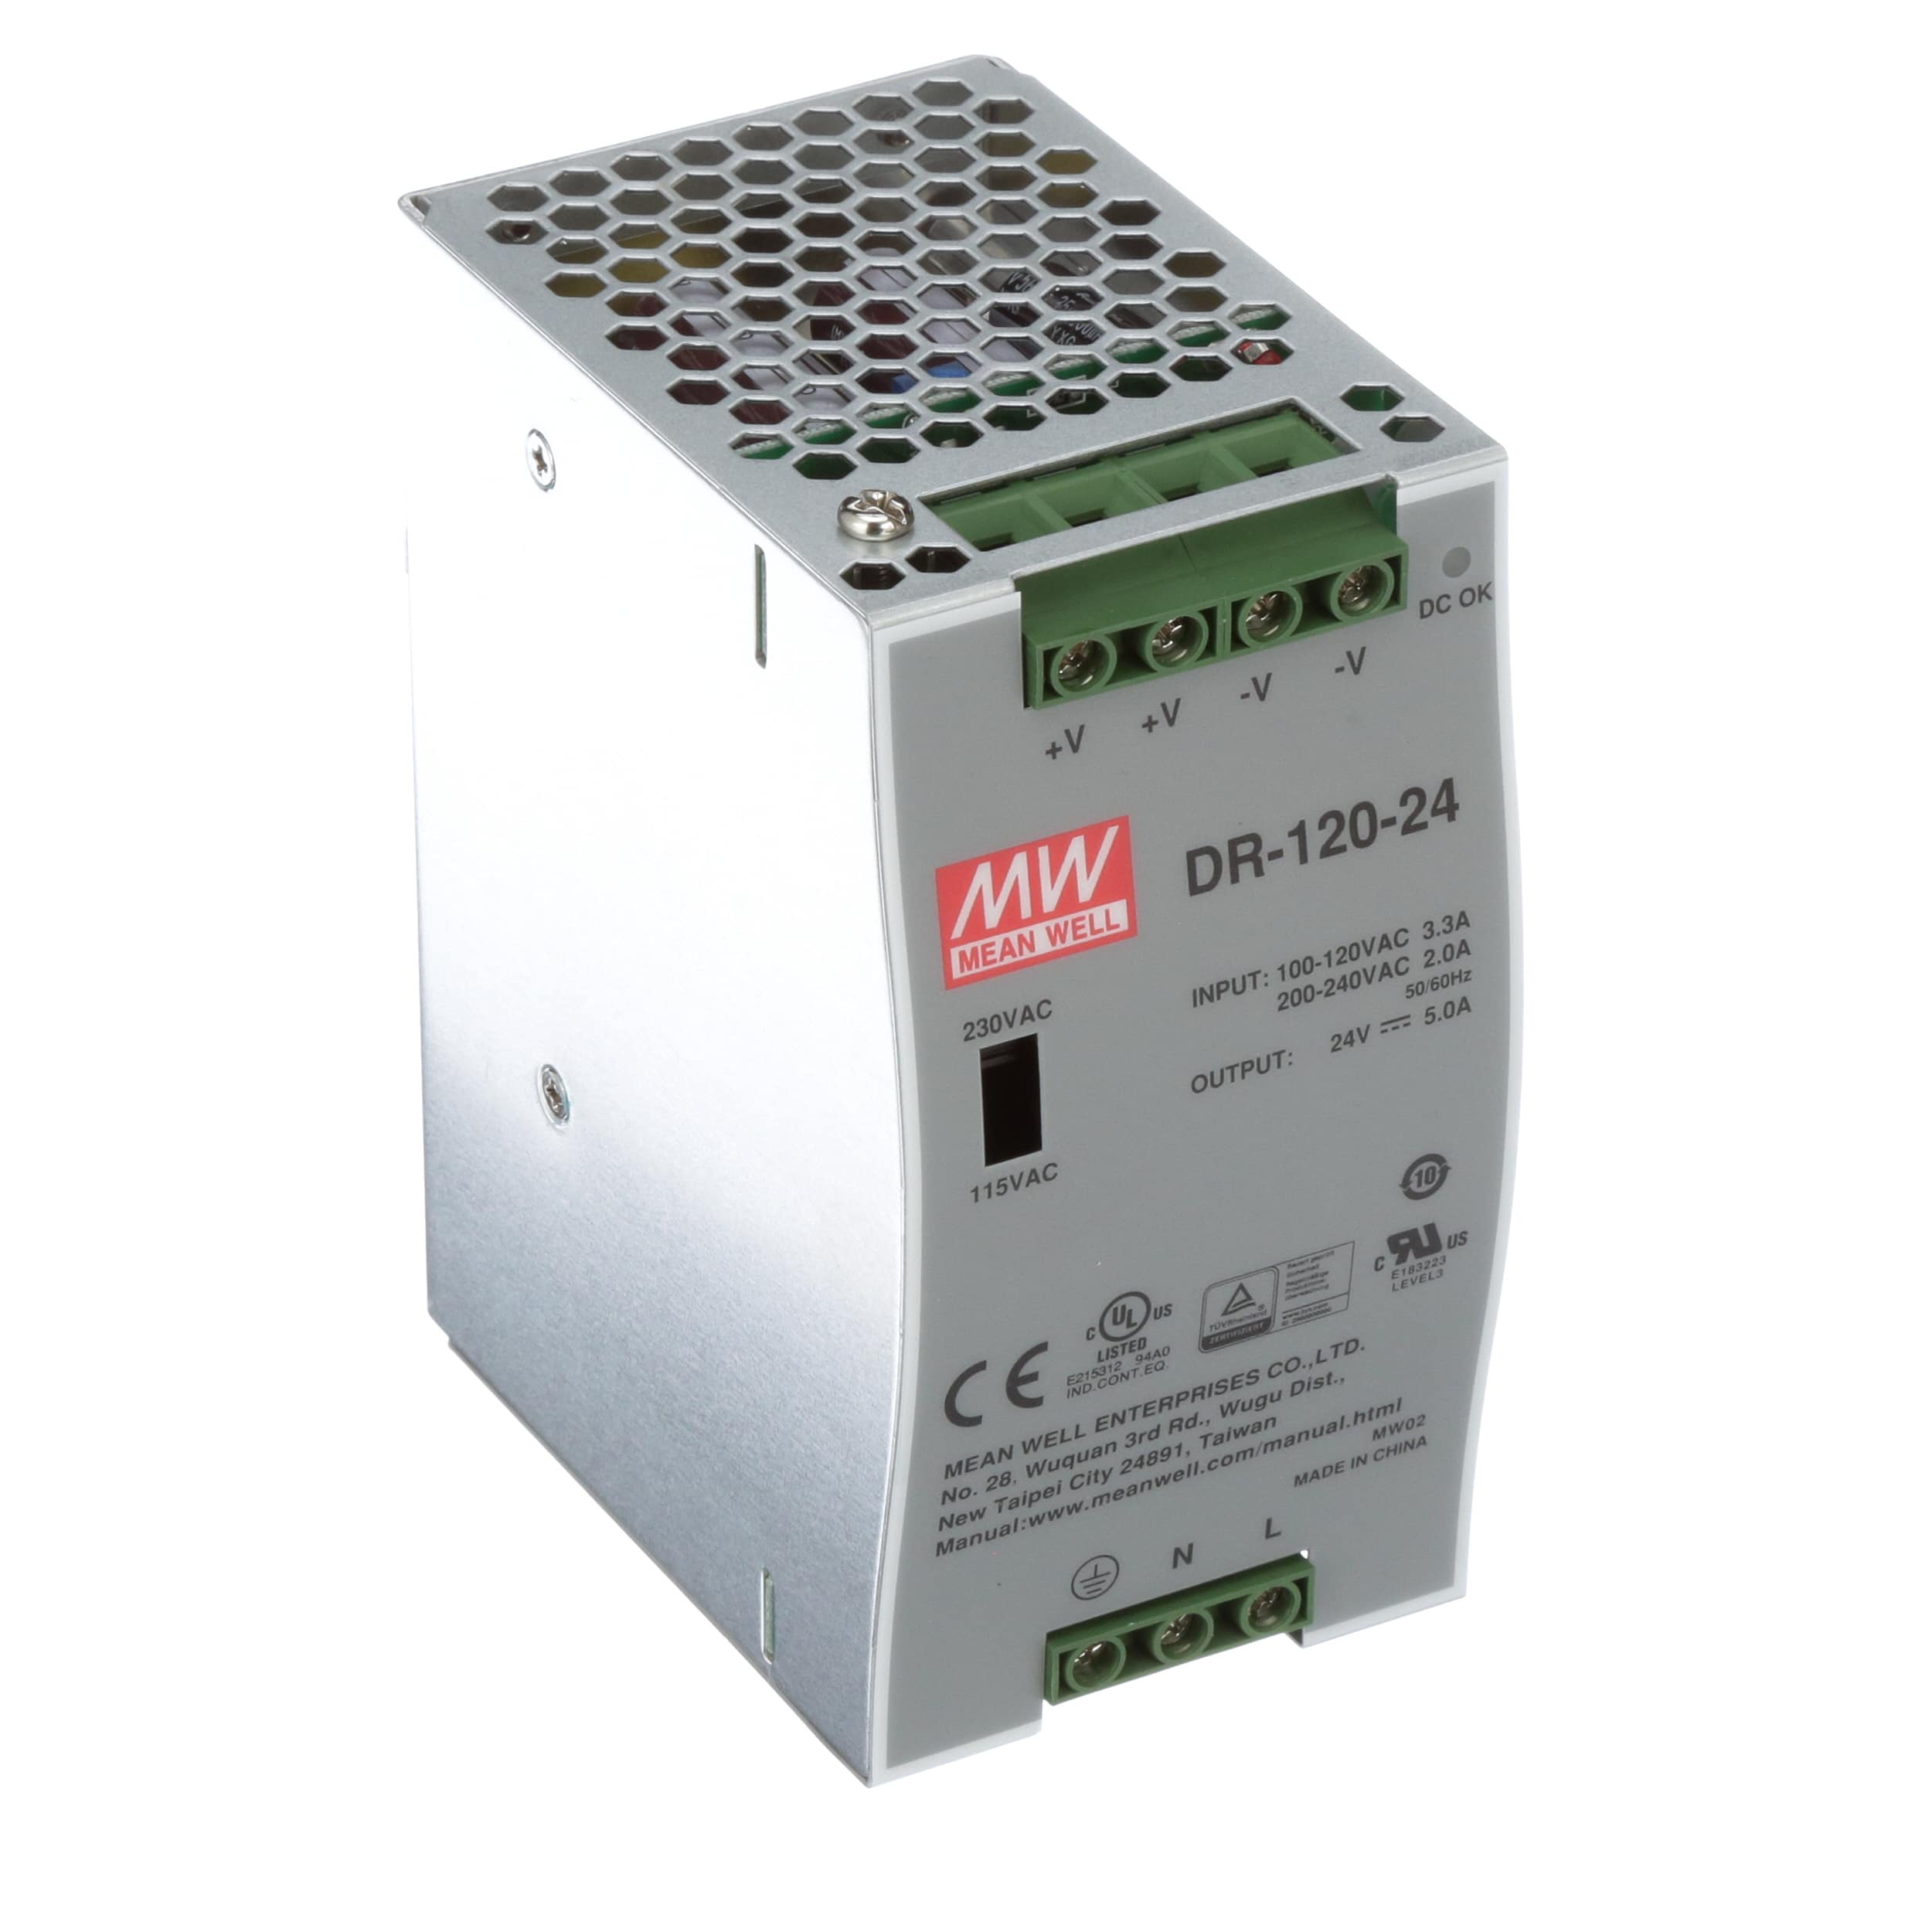 Mean Well Usa Dr 120 24 Power Supply Ac Dc 24v 5a 88 132 176 Vdc Dip Reed Relay All Electronics Corp 264v In Enclosed Din Rail 120w Series Allied Automation